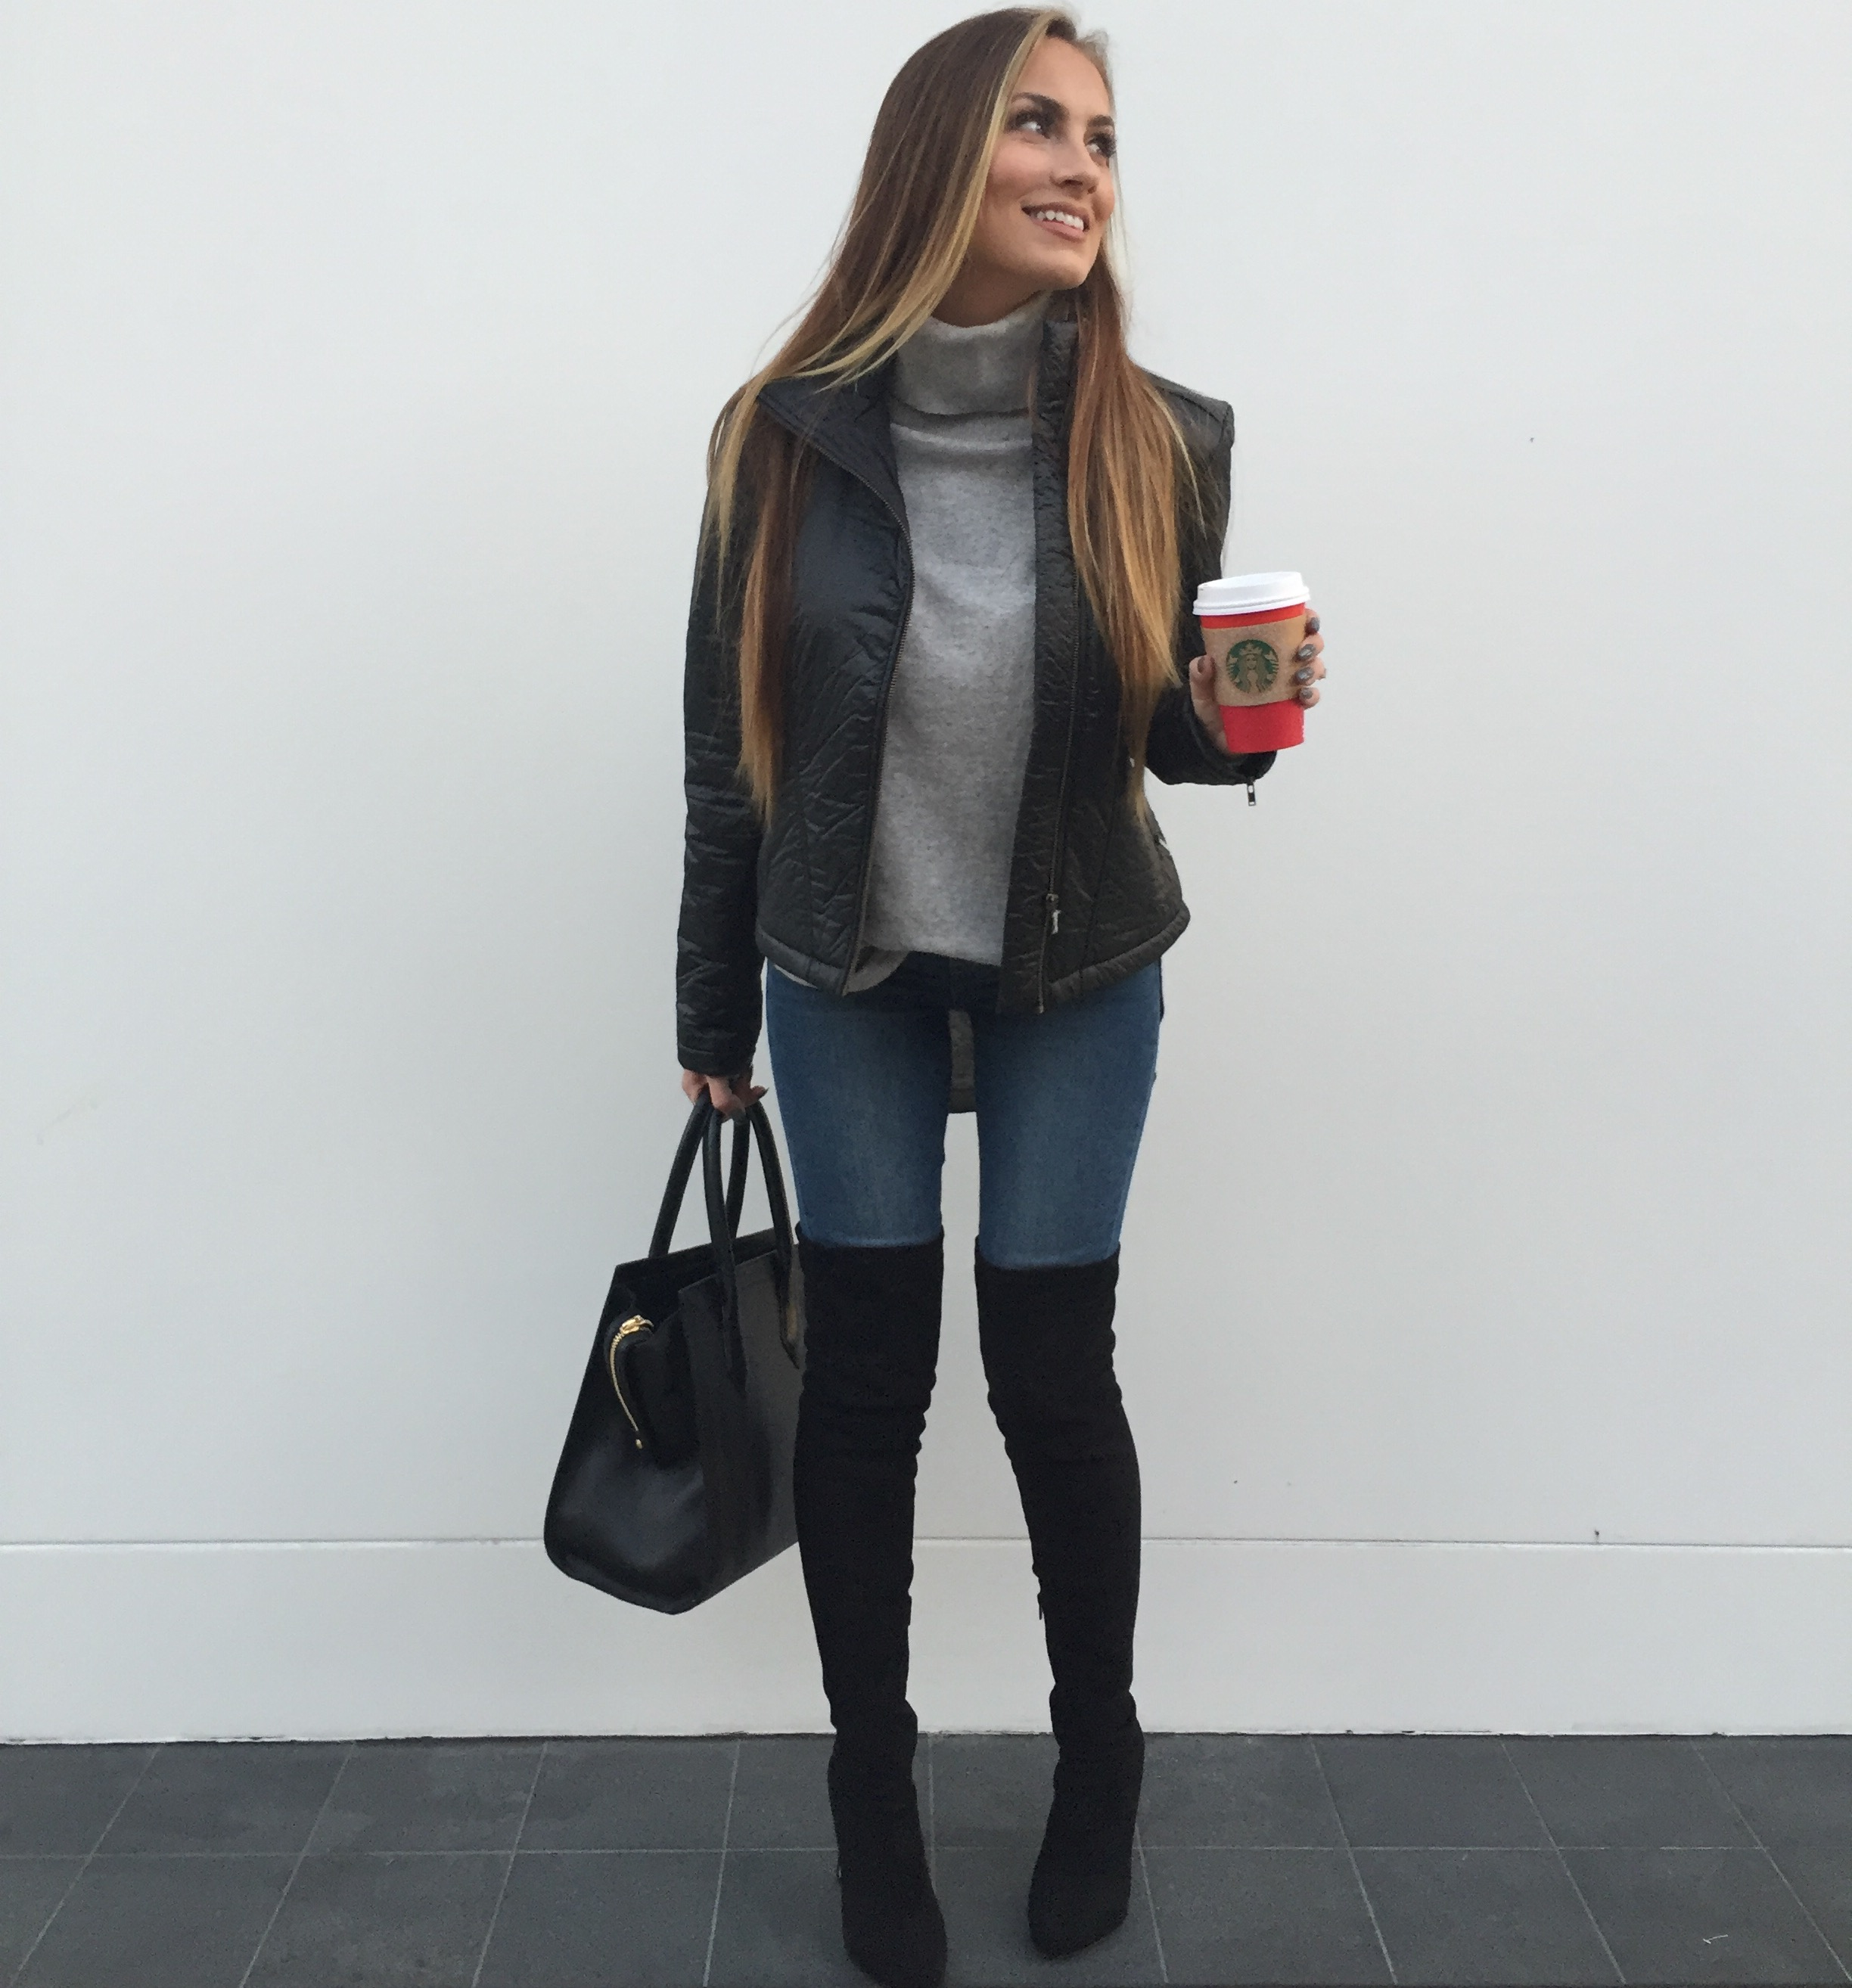 over the knee boots sweater fall outfit angela lanter hello gorgeous